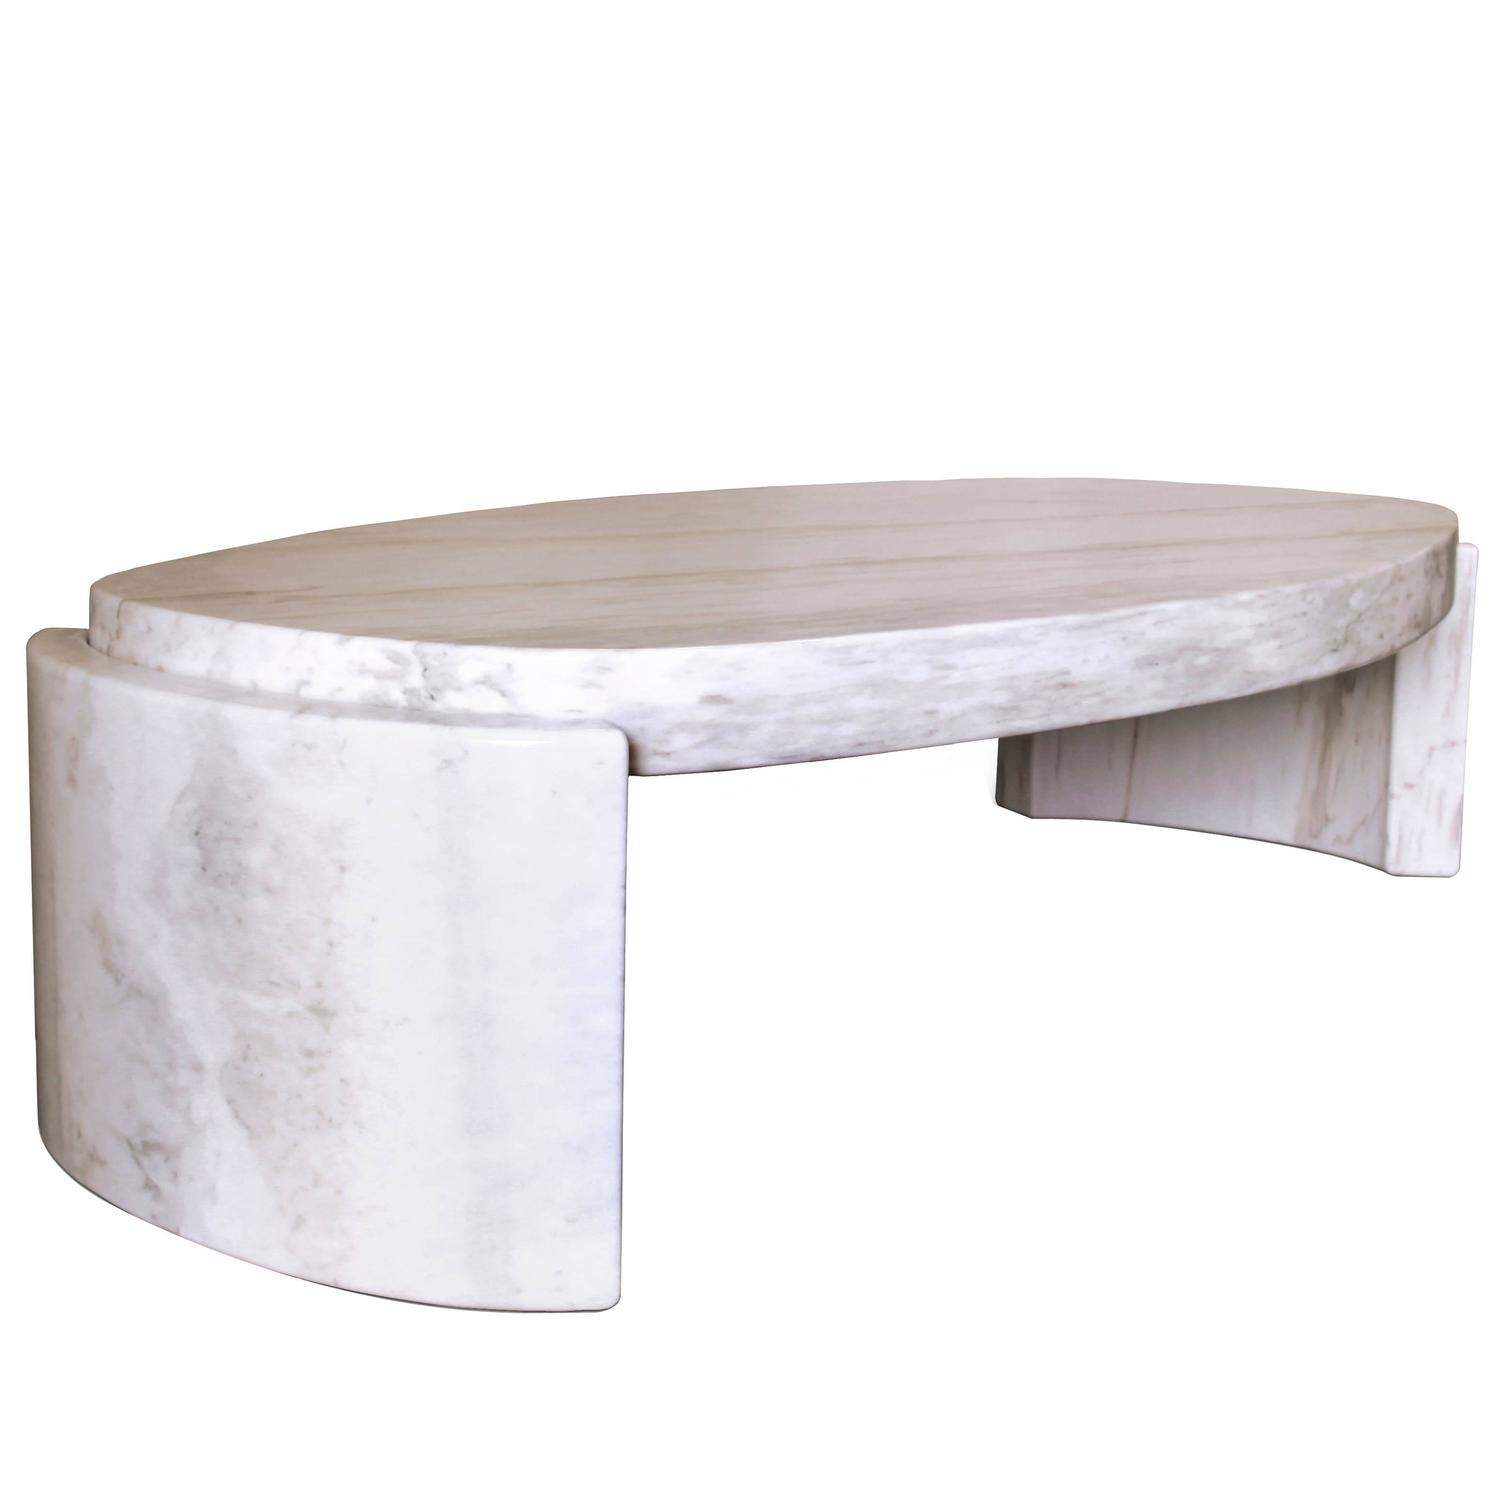 Large European Modern White Marble Tacca Oval Centre Coffee Table By